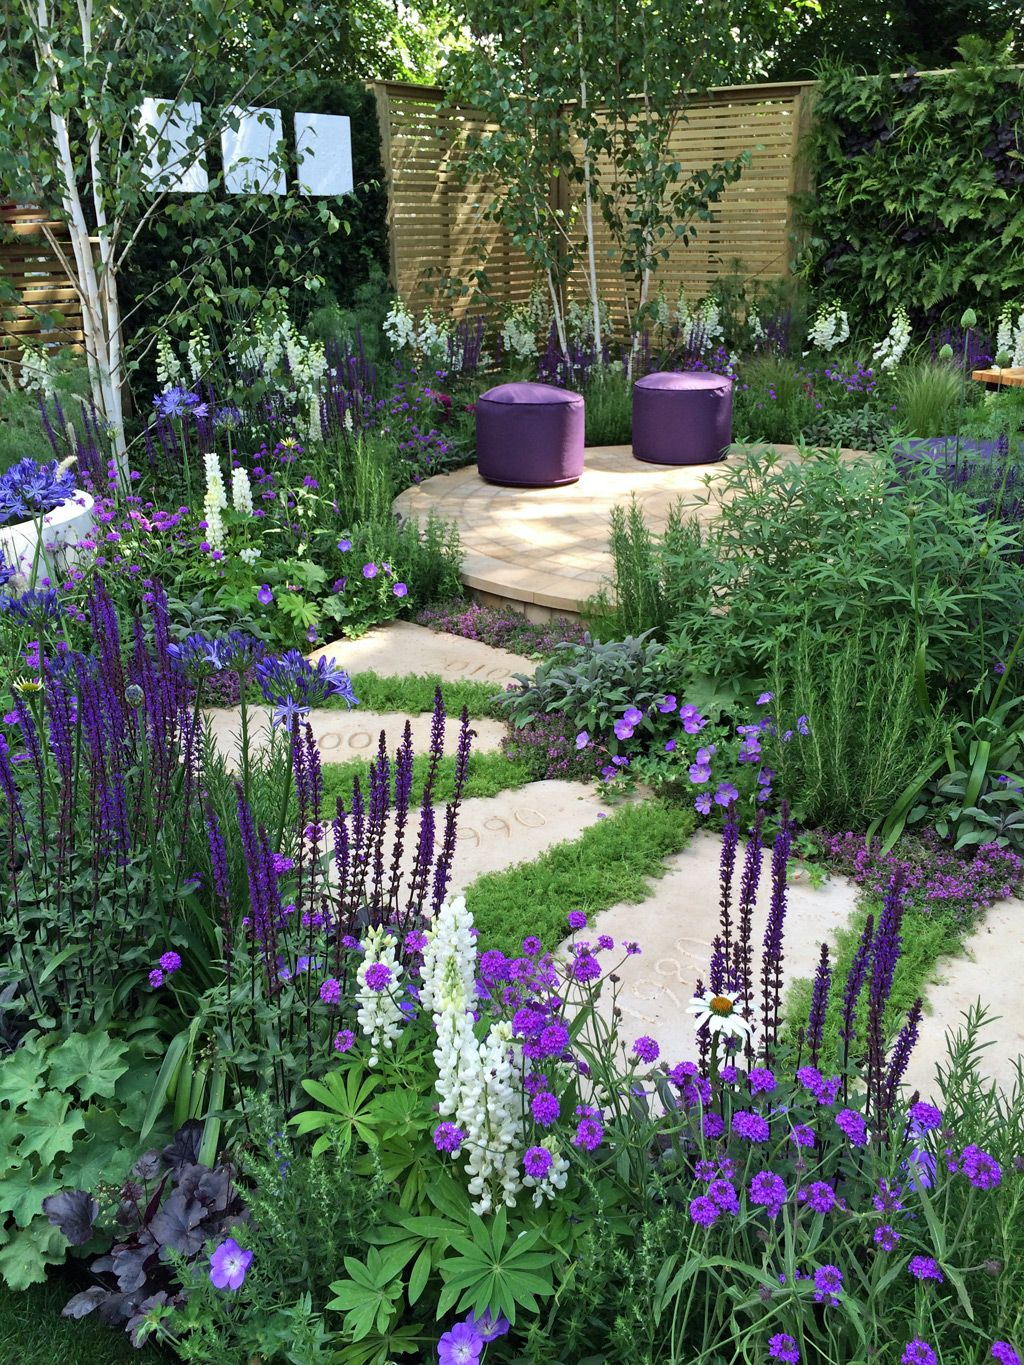 50 Best Backyard Landscaping Ideas and Designs in 2020 on Best Backyard Landscaping id=86658